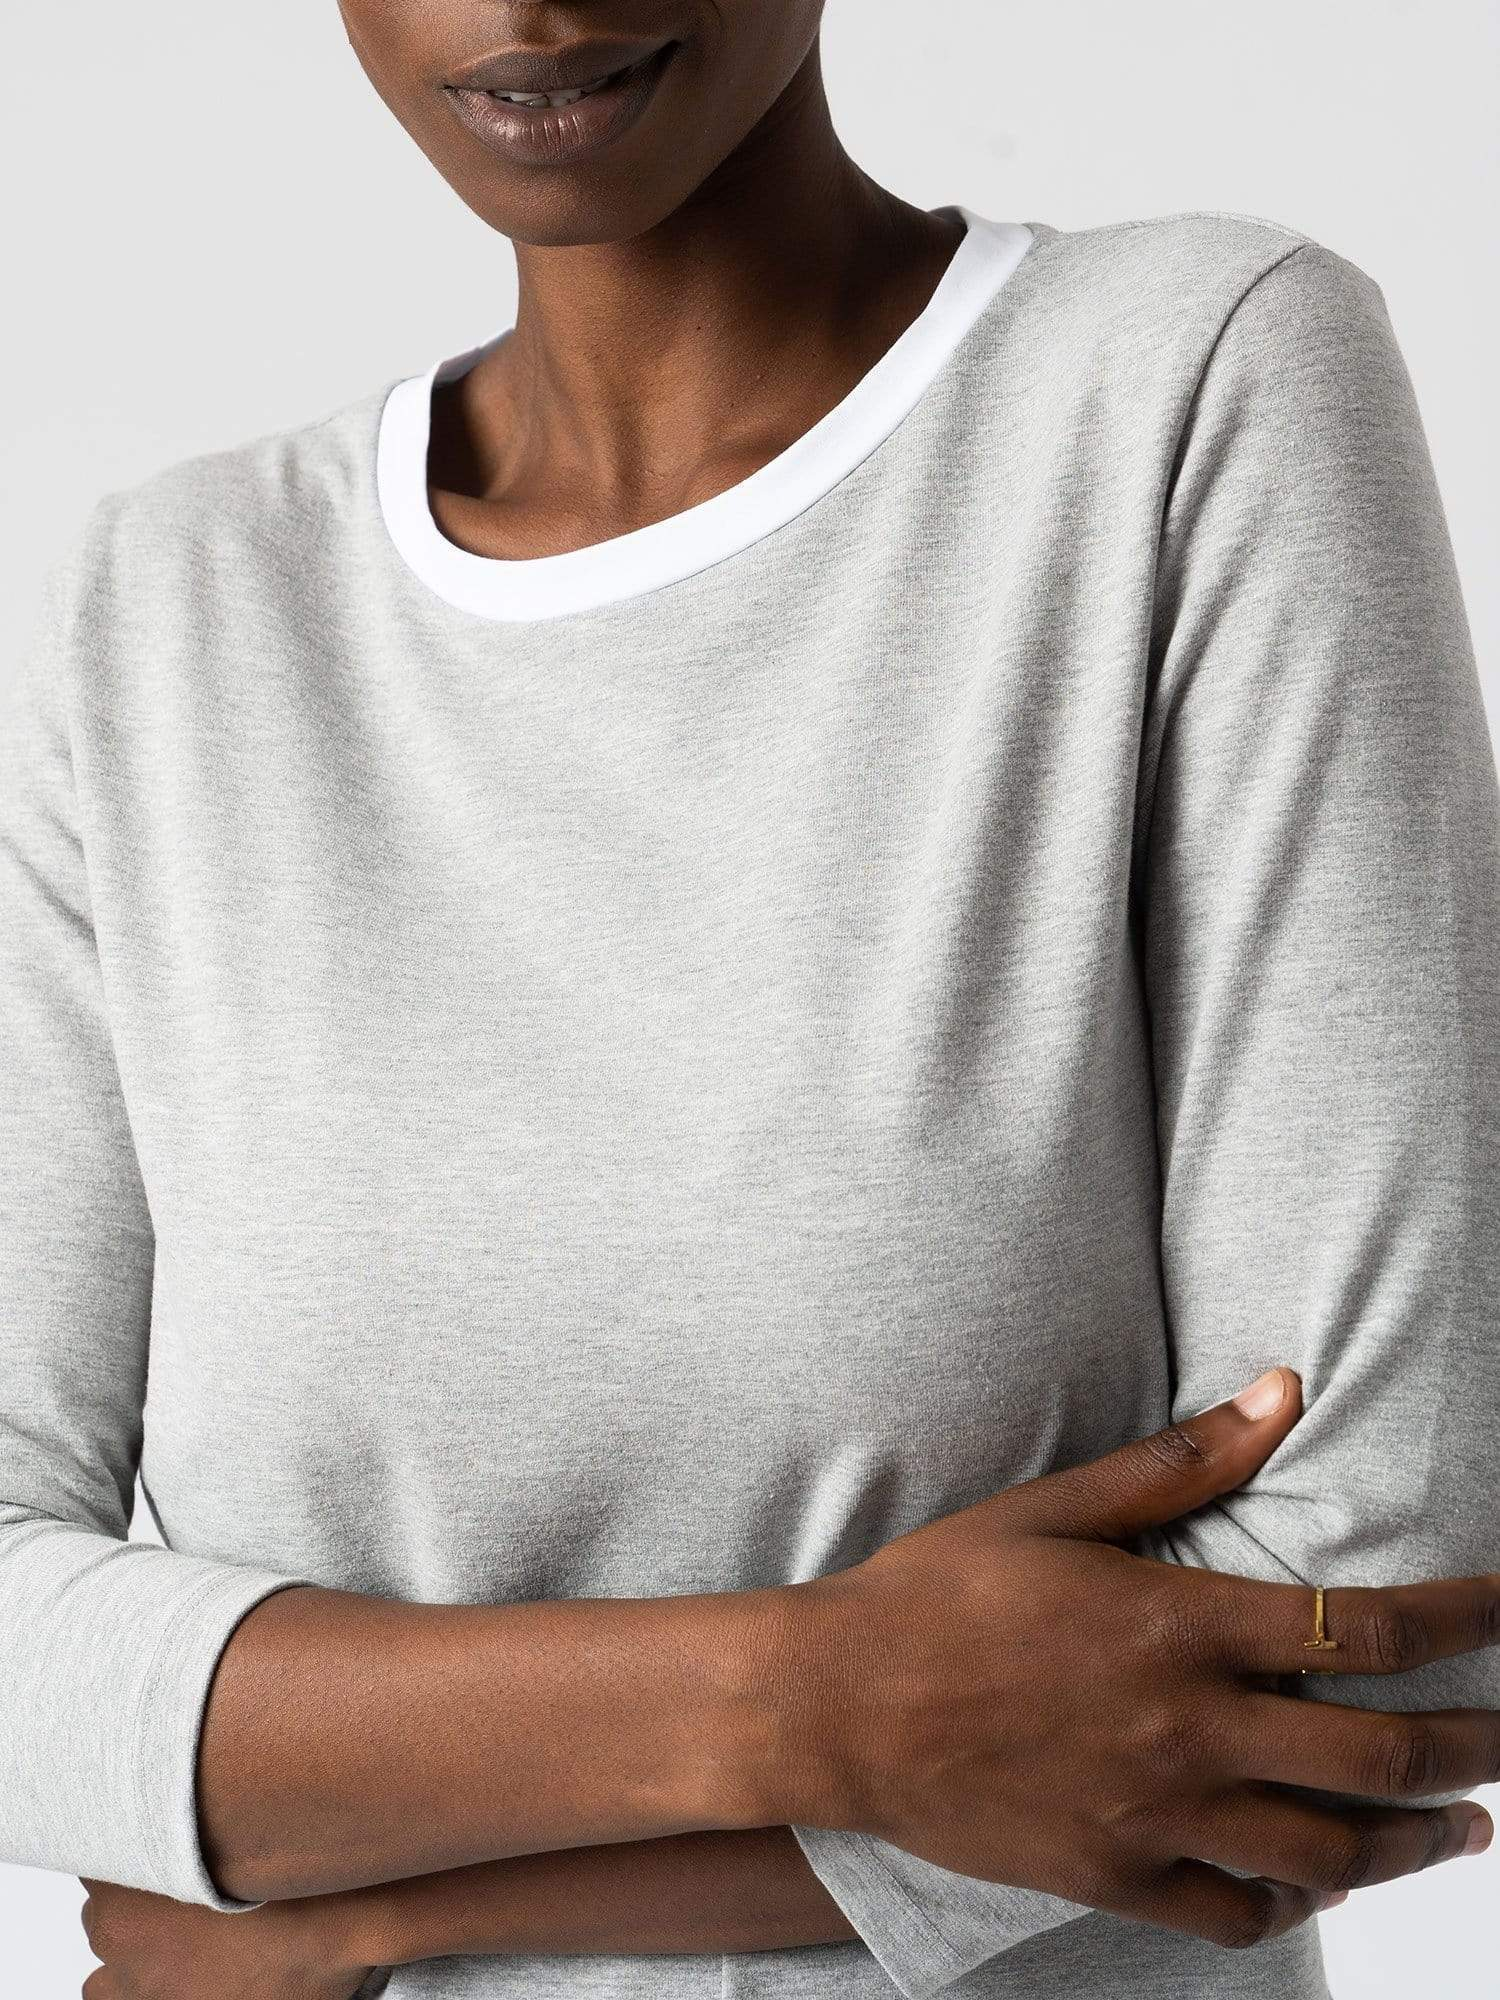 Zaggora Sweater Contrast Cotton Sweater - Grey